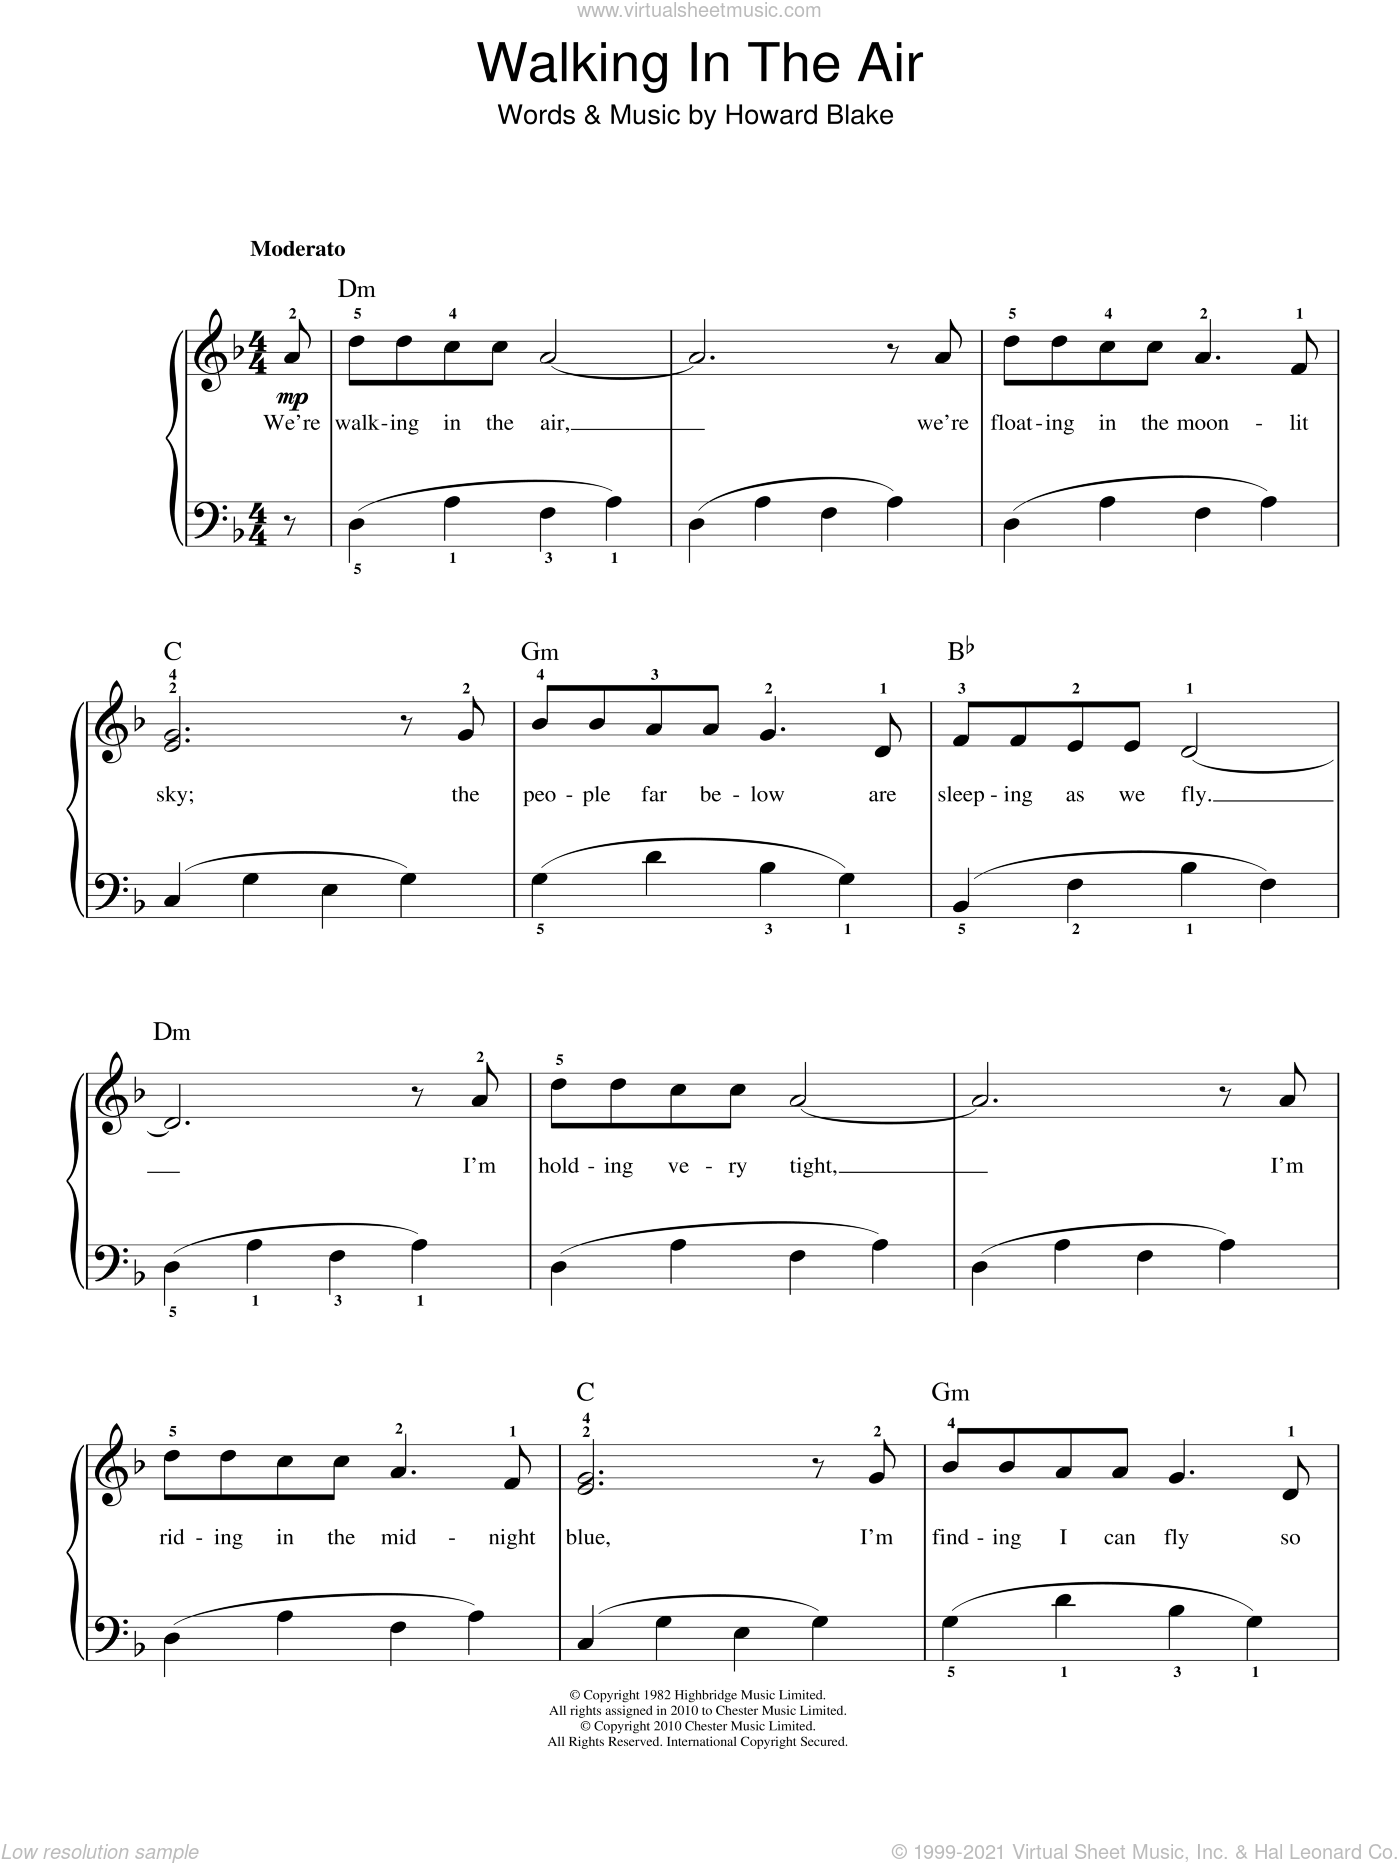 Walking In The Air sheet music for piano solo (chords) by Howard Blake